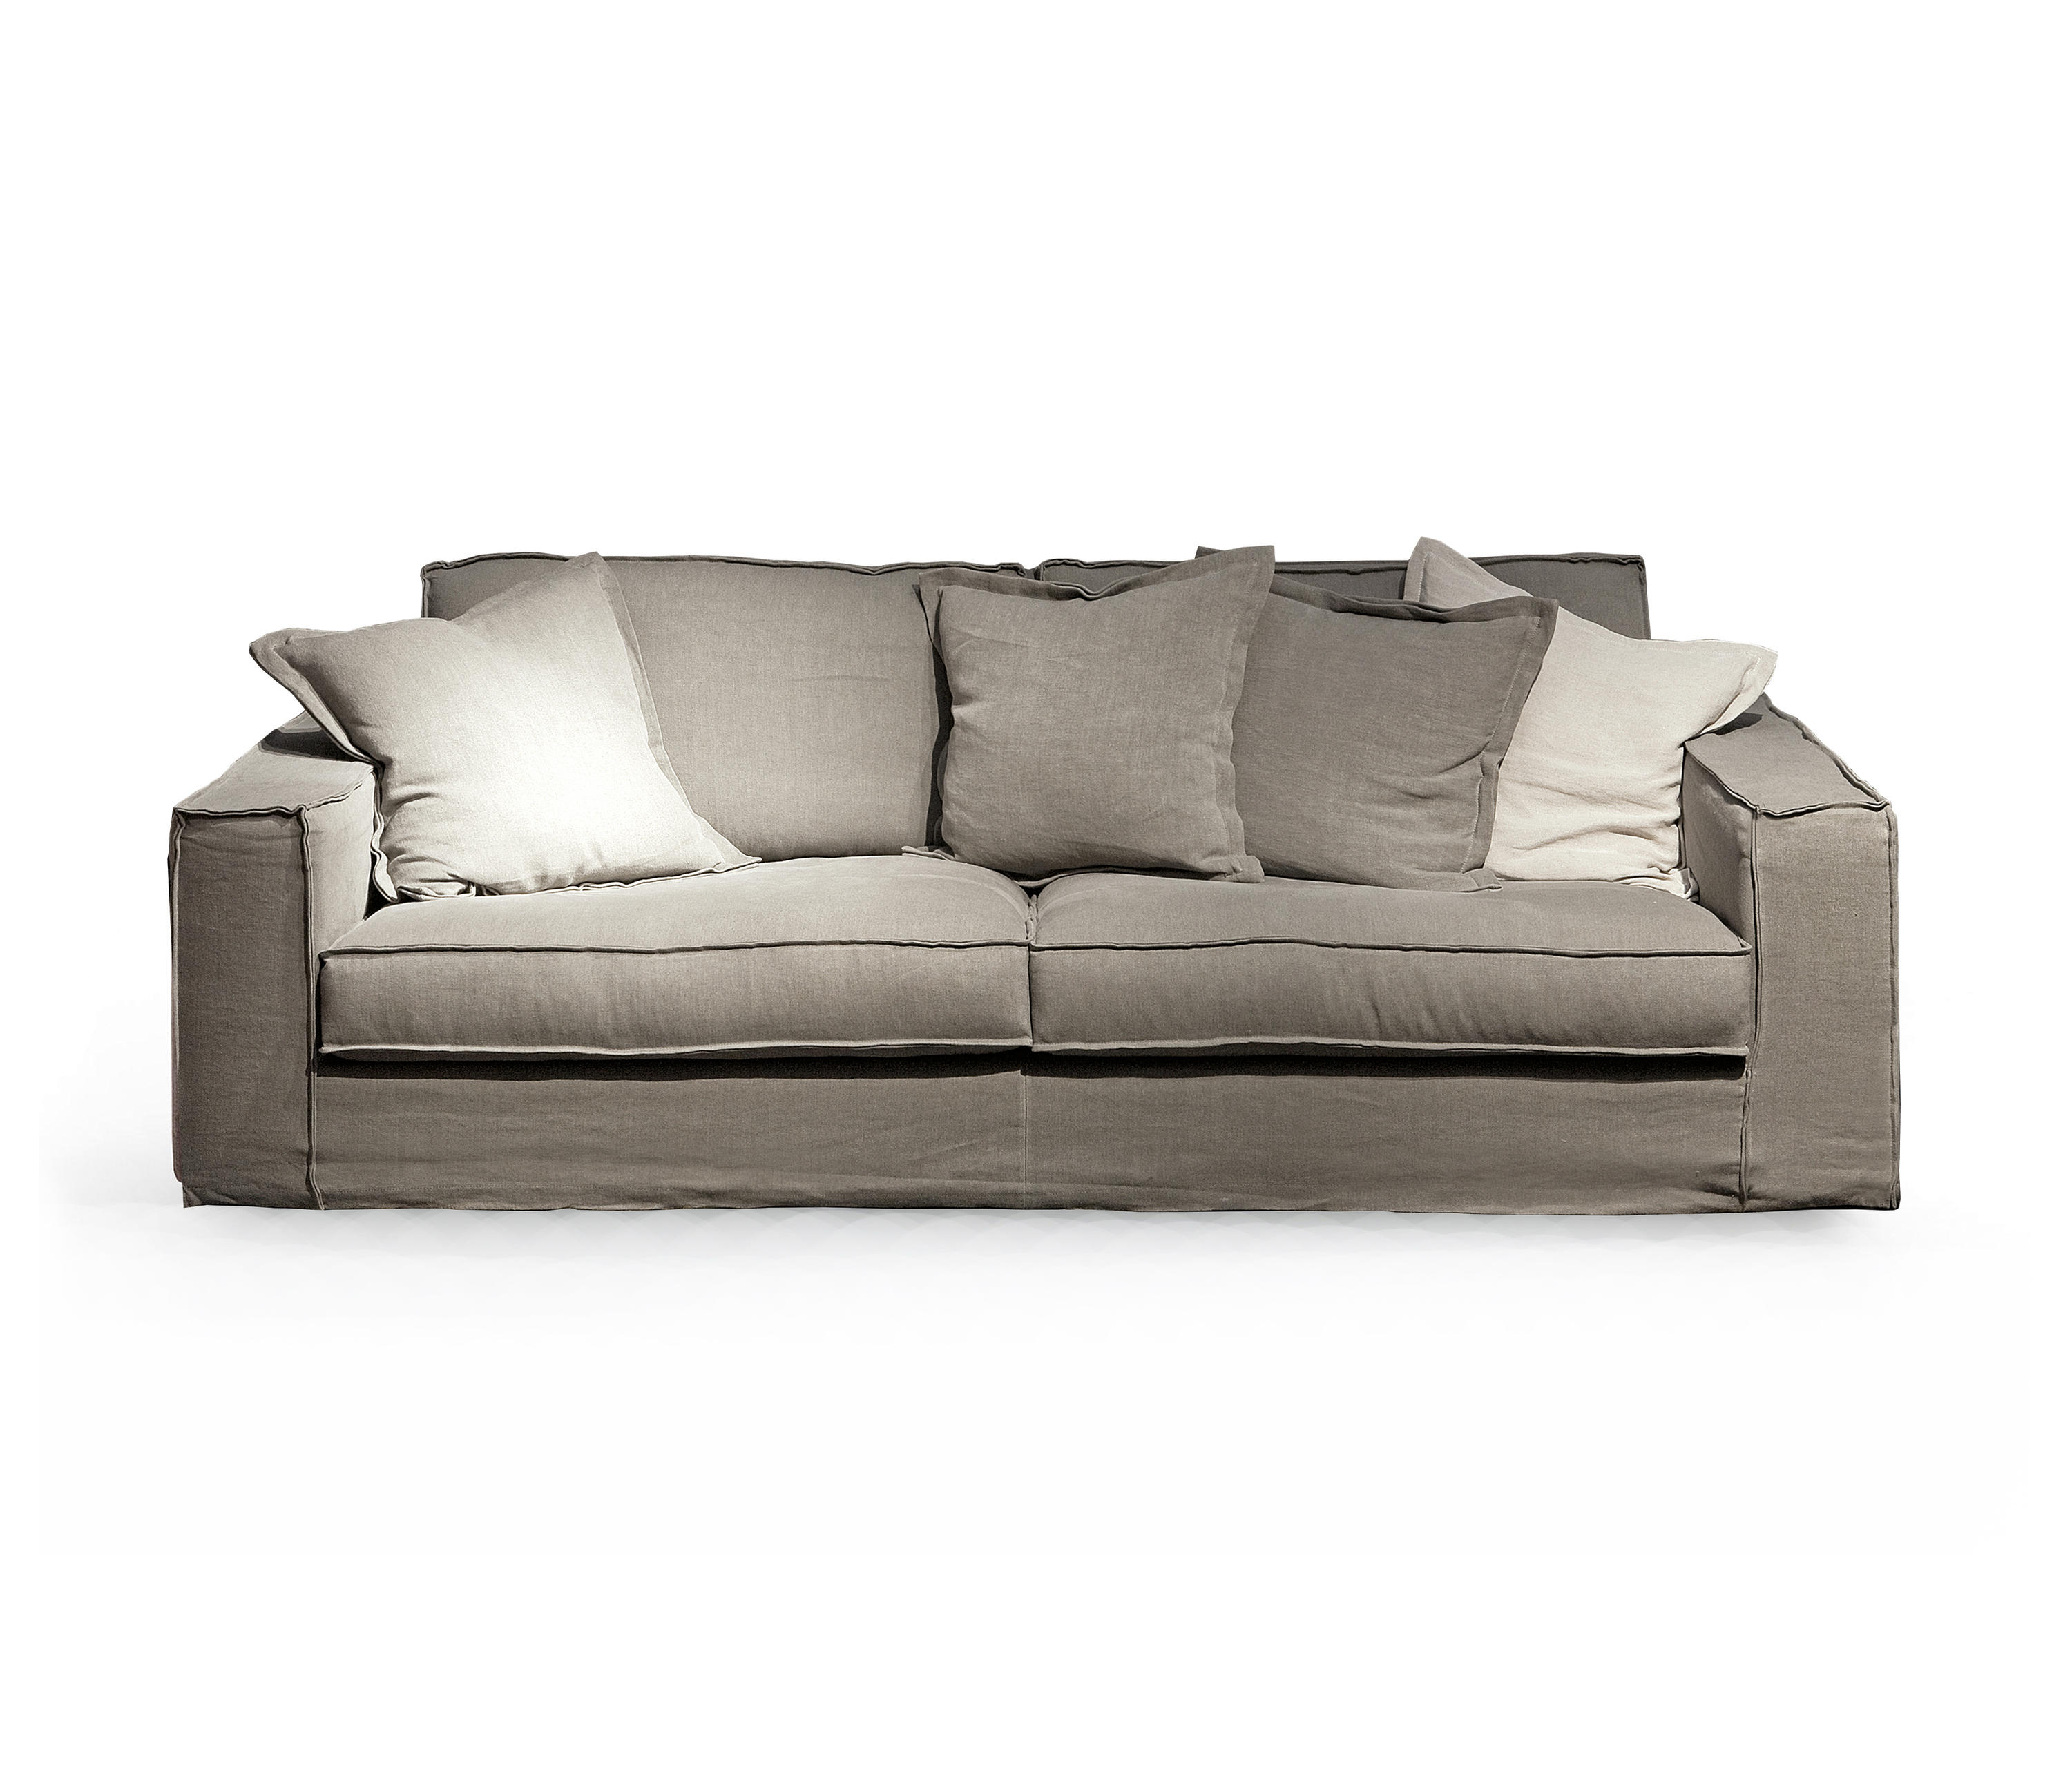 KEY WEST SOFA - Lounge sofas from Villevenete | Architonic